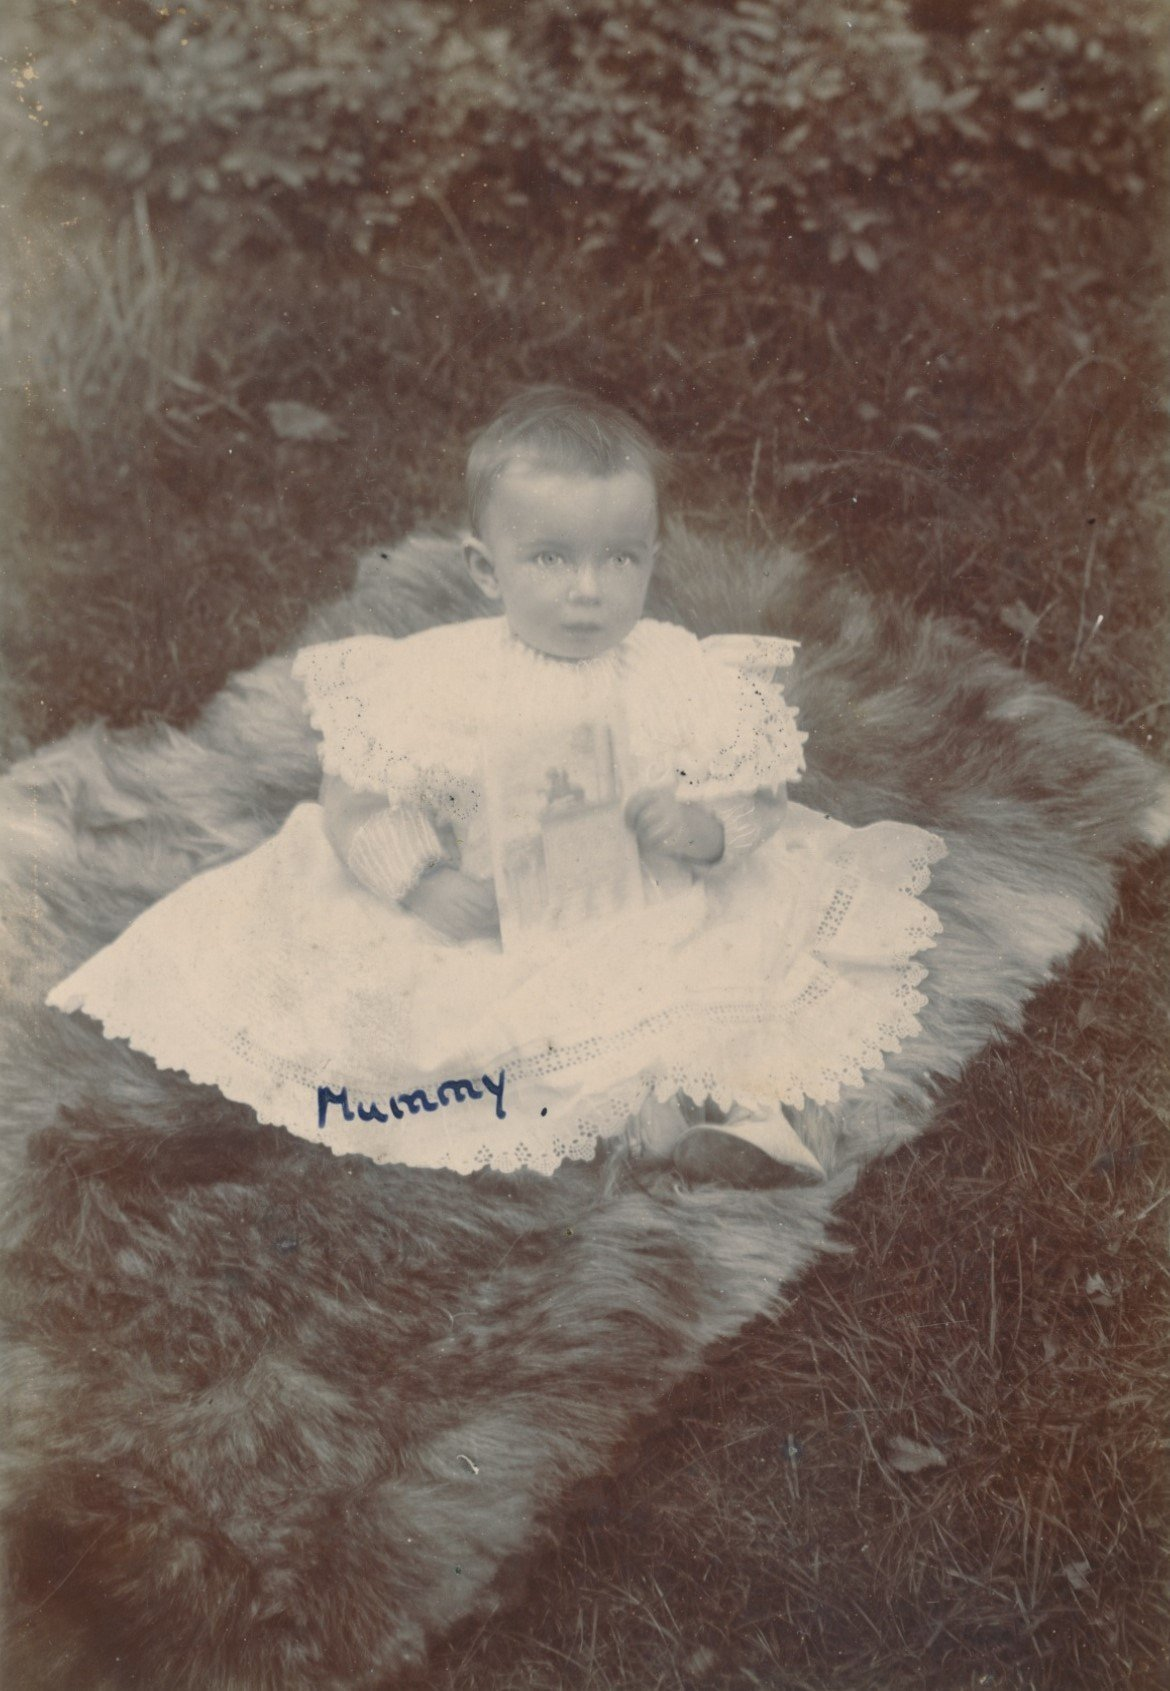 Victoria 'Kathleen' Smith (1897-1978), daughter of Fanny Catherine Draper (1866-1944) and William Henry Smith (1871-1939)